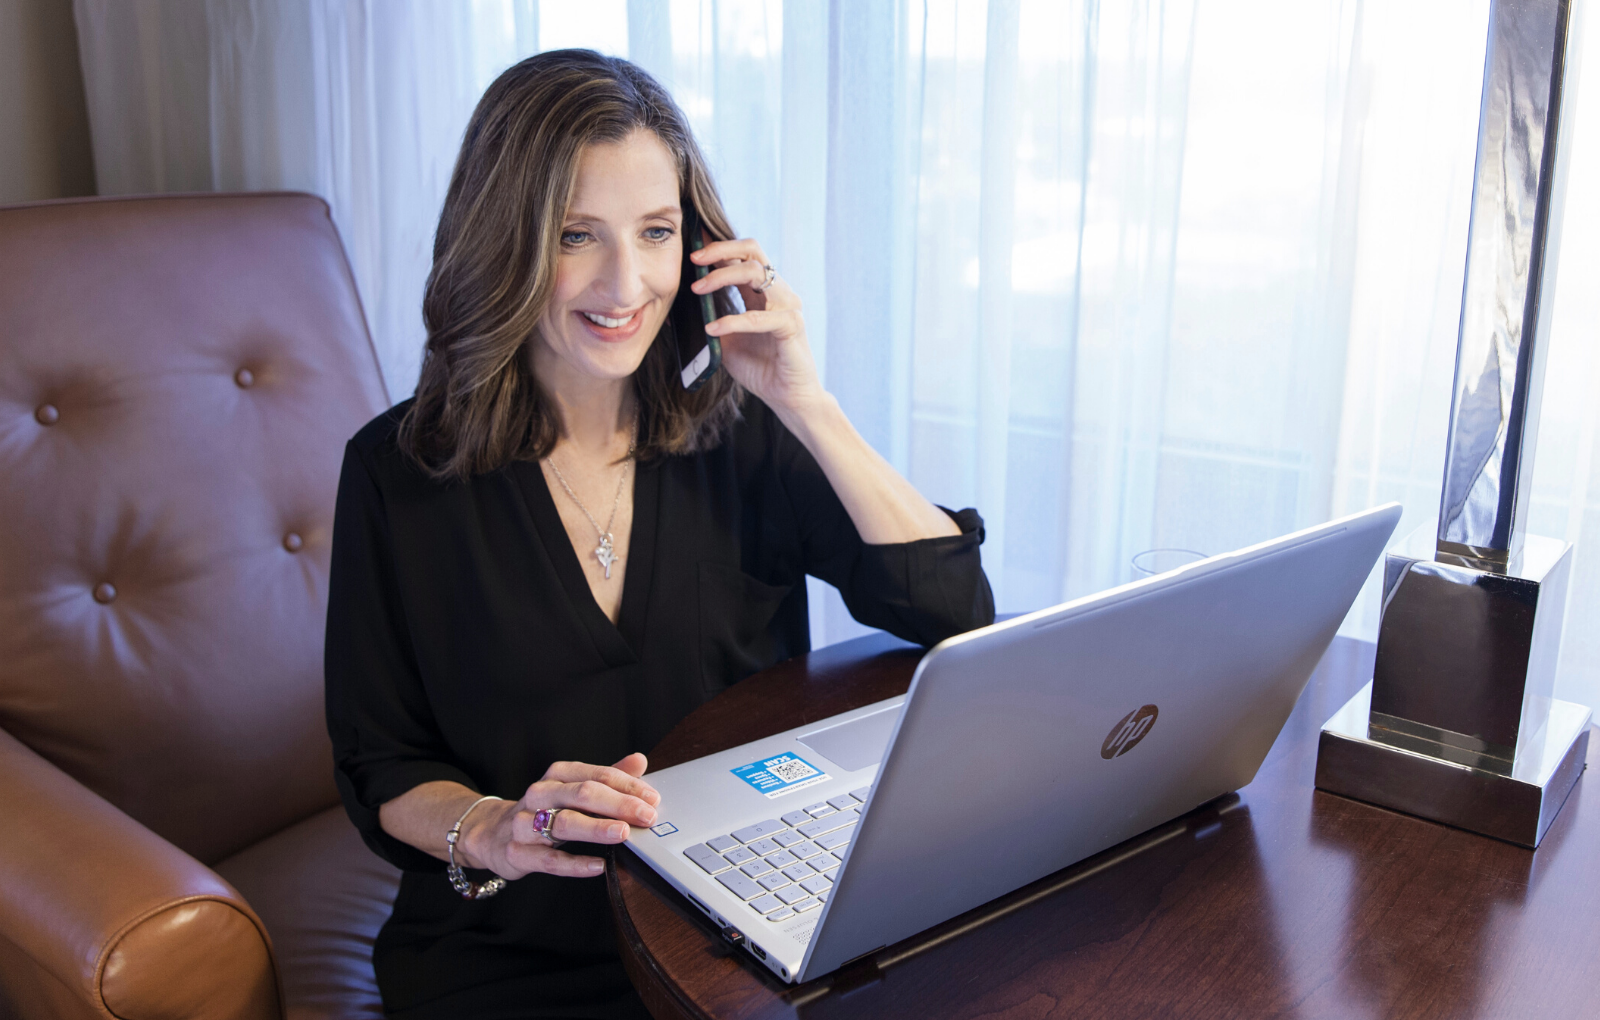 Remote Workforce Playbook: Lead Your Team From Virtually Anywhere